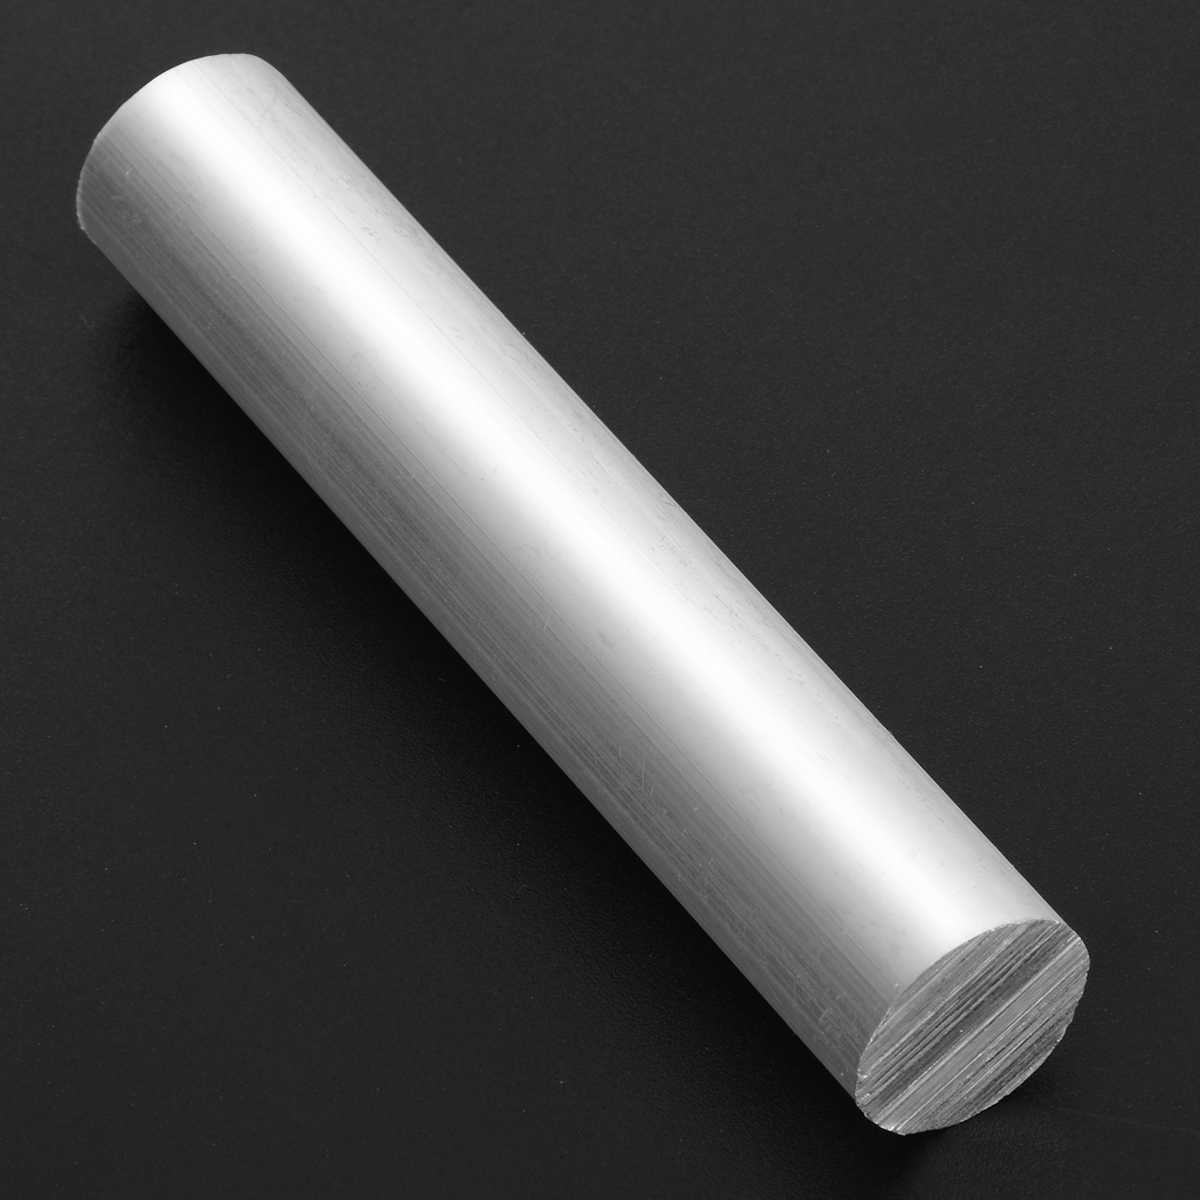 NEW 99.99/% Magnesium Metal Rod Mg 18mm x 100mm High Purity 1pc